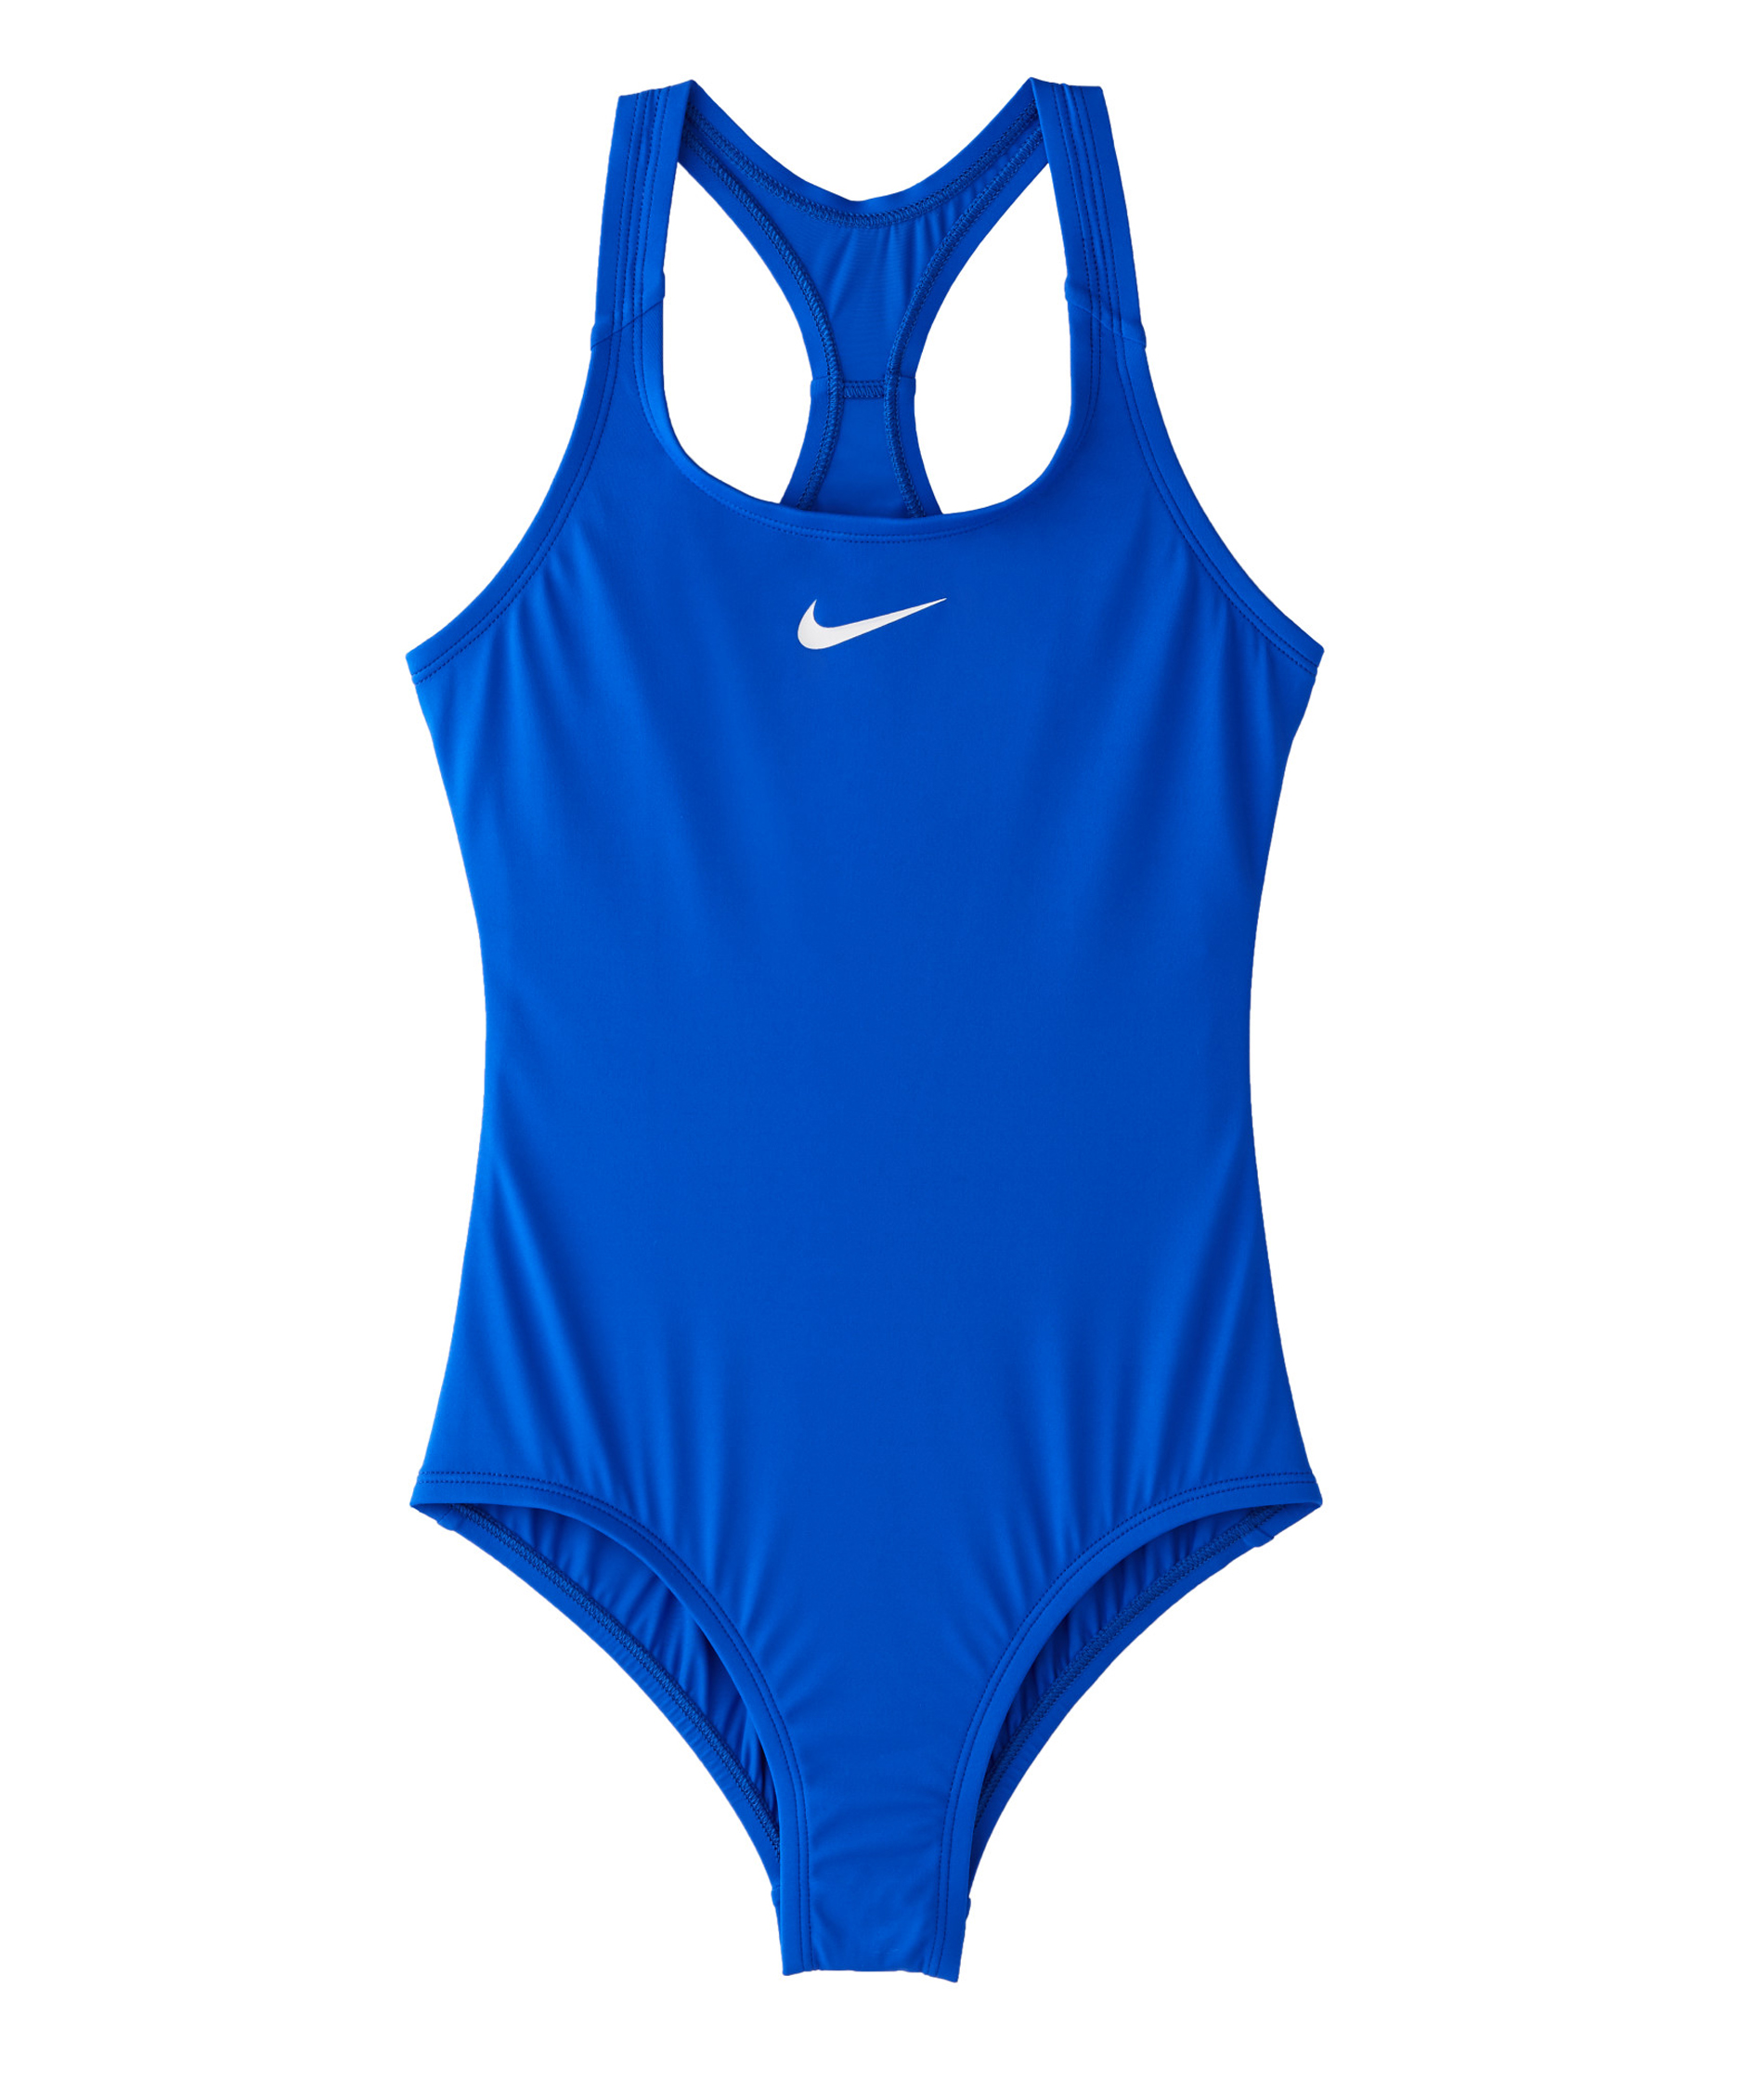 Nike Swim Girls Solid Racerback One-Piece - Racer Blue